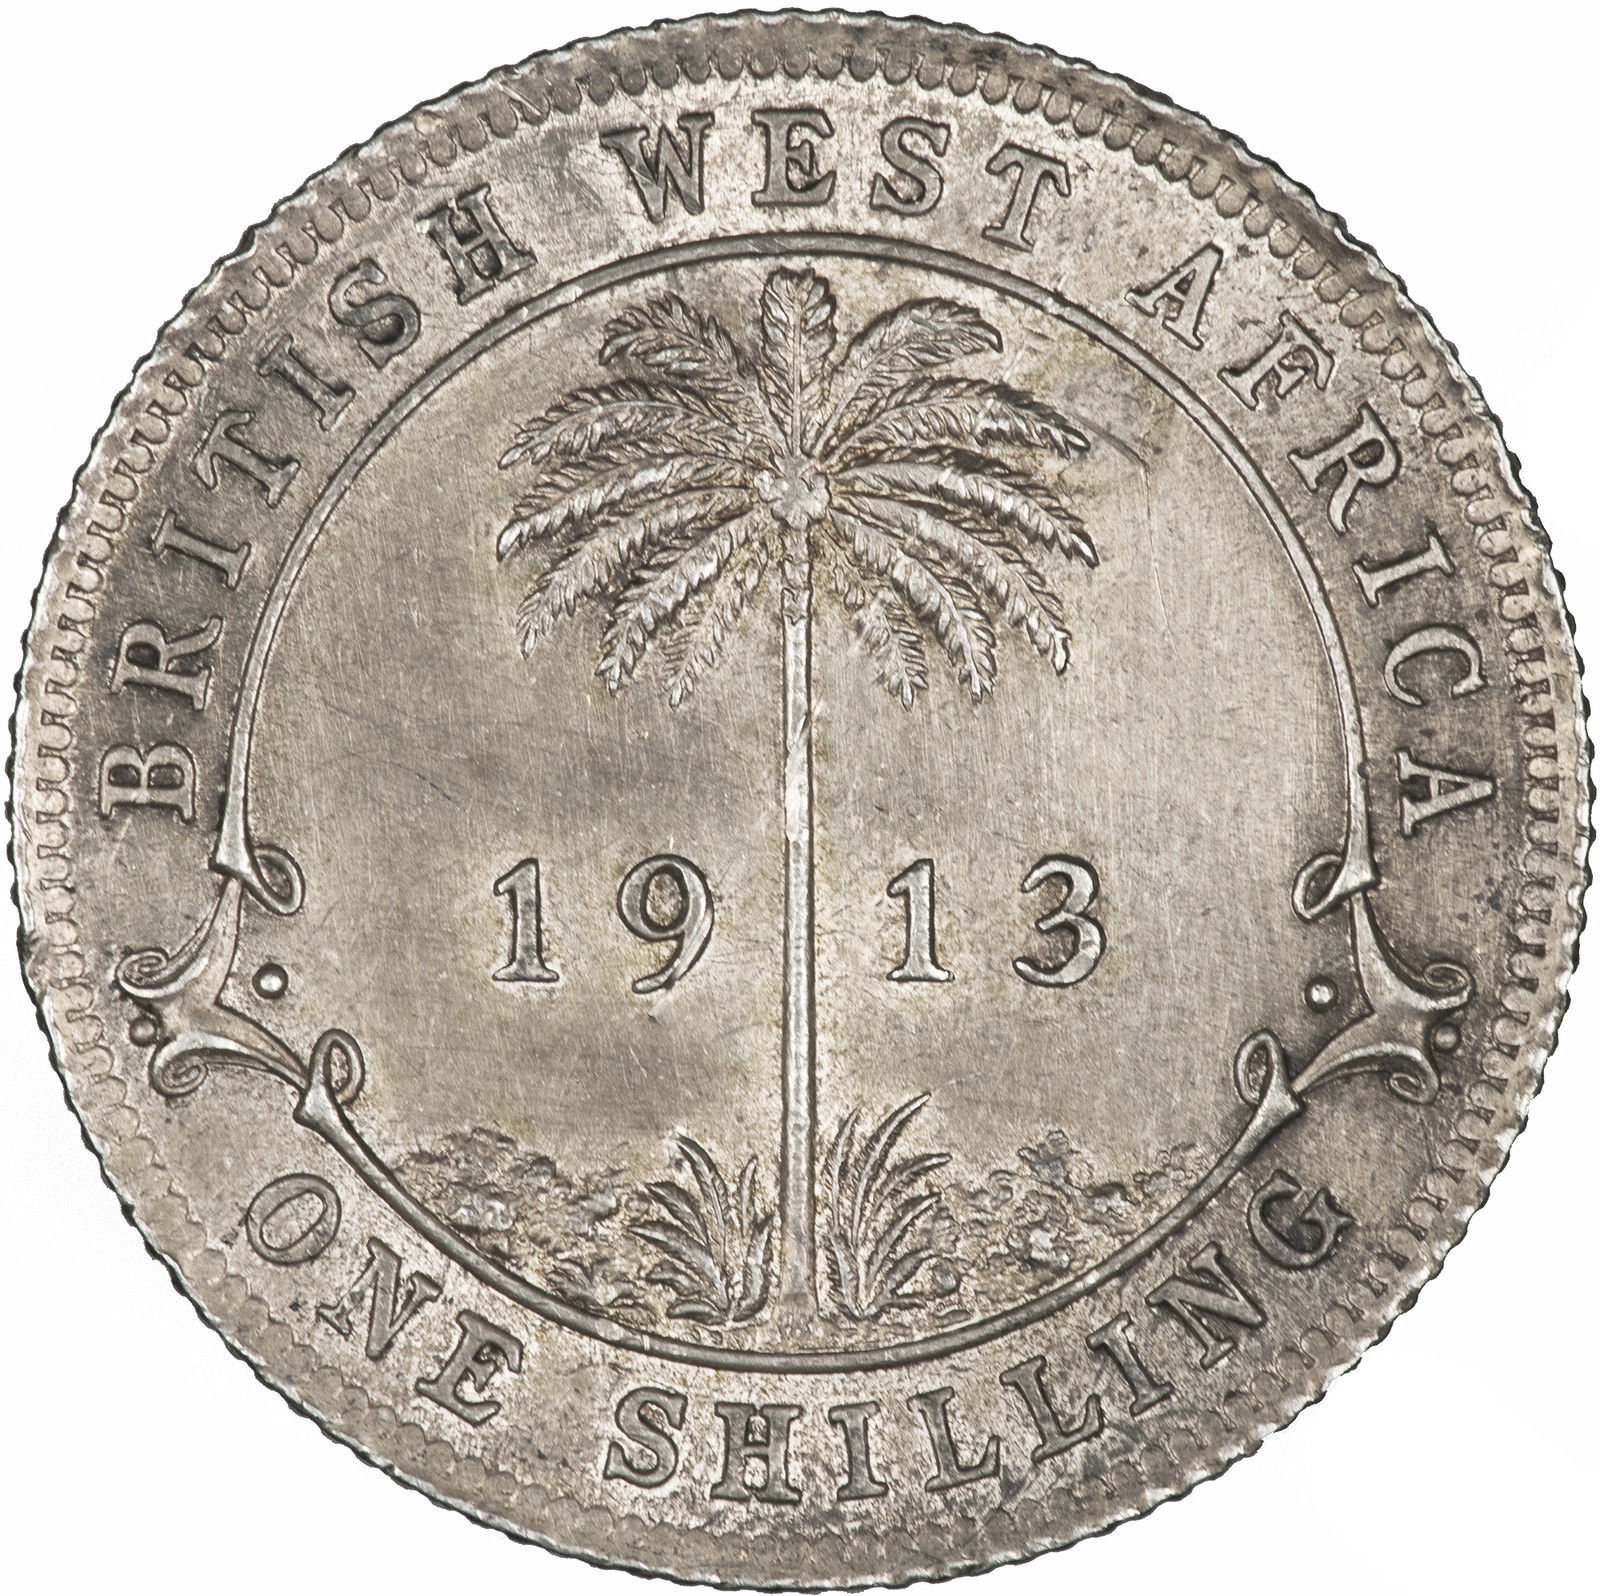 Shilling: Photo Coin - 1 Shilling, British West Africa, 1913